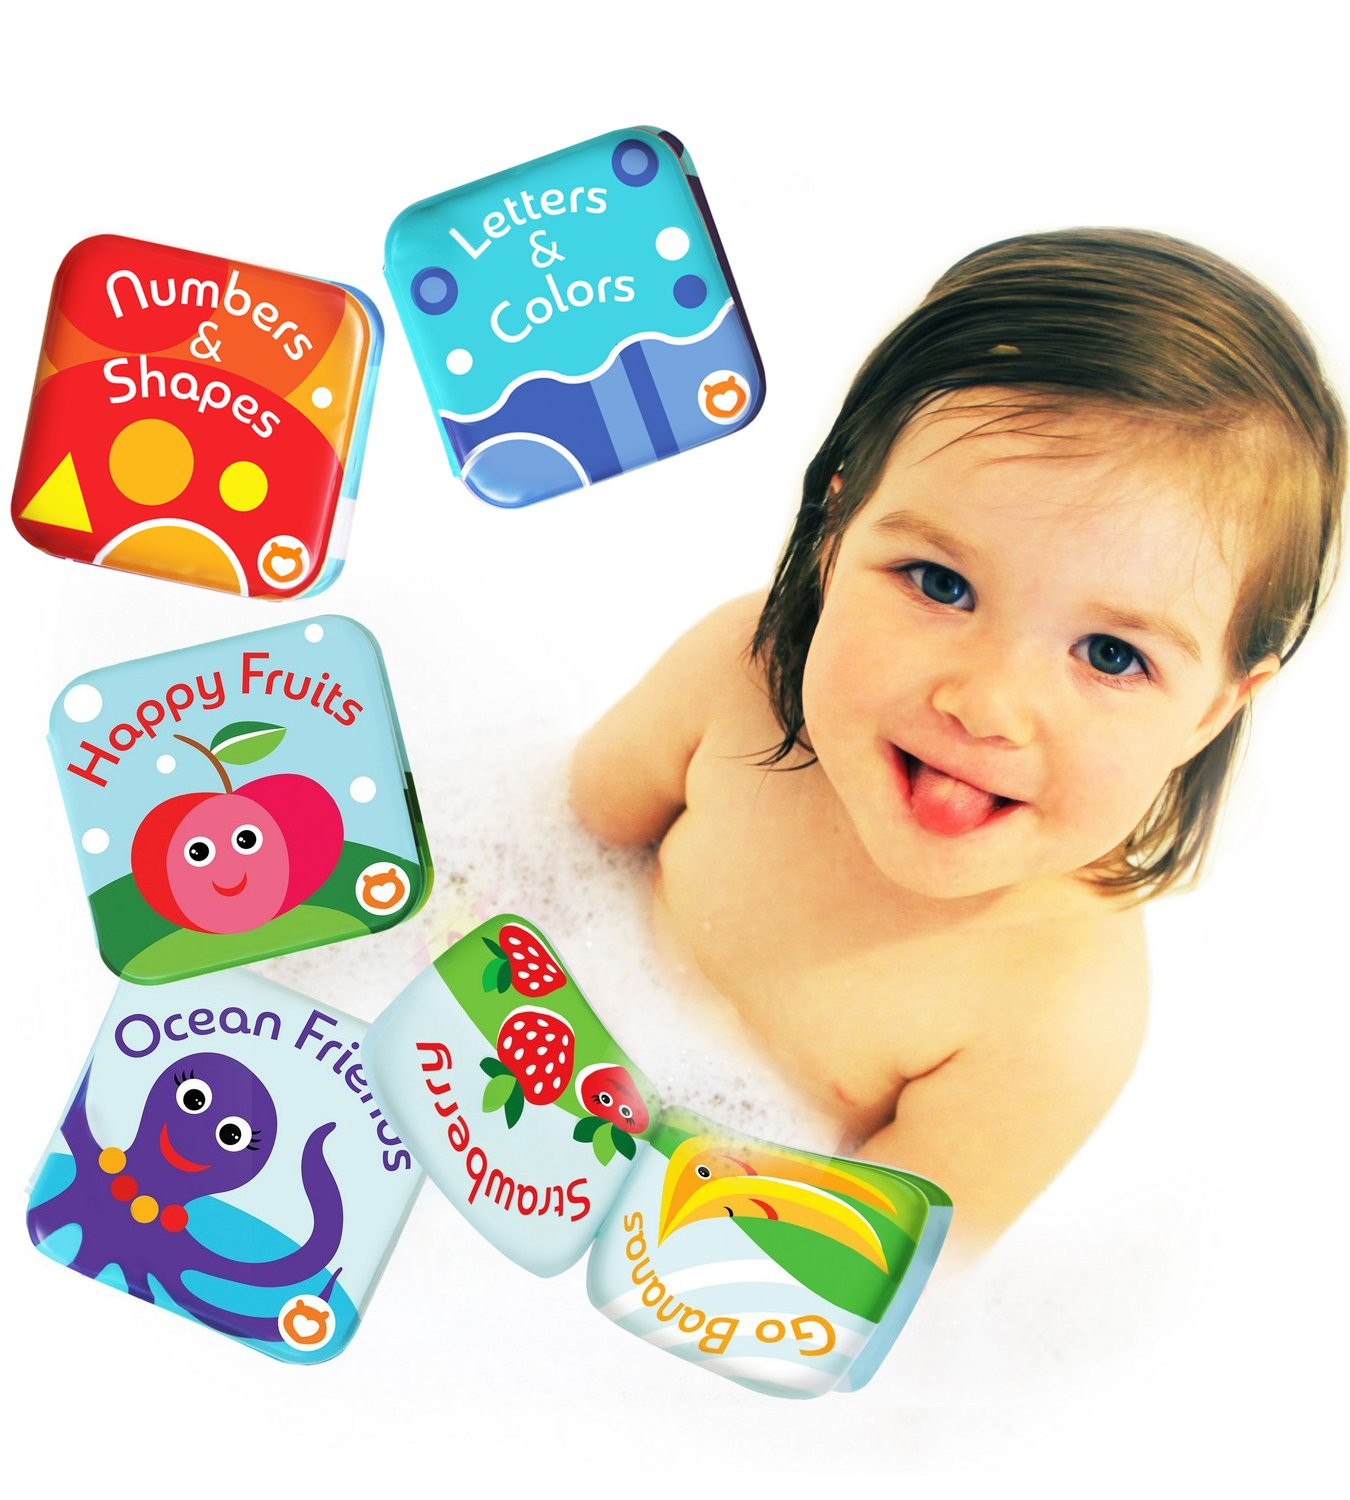 Floating Baby Bath Books Pack of 4 by Baby Bibi. Baby Book Set: Fruit Books for Children, Alphabet & Numbers Books, Bath Toys for Toddlers with Sea Creatures. 4 Bath Tub Books for Toddlers Waterproof. Boxiki